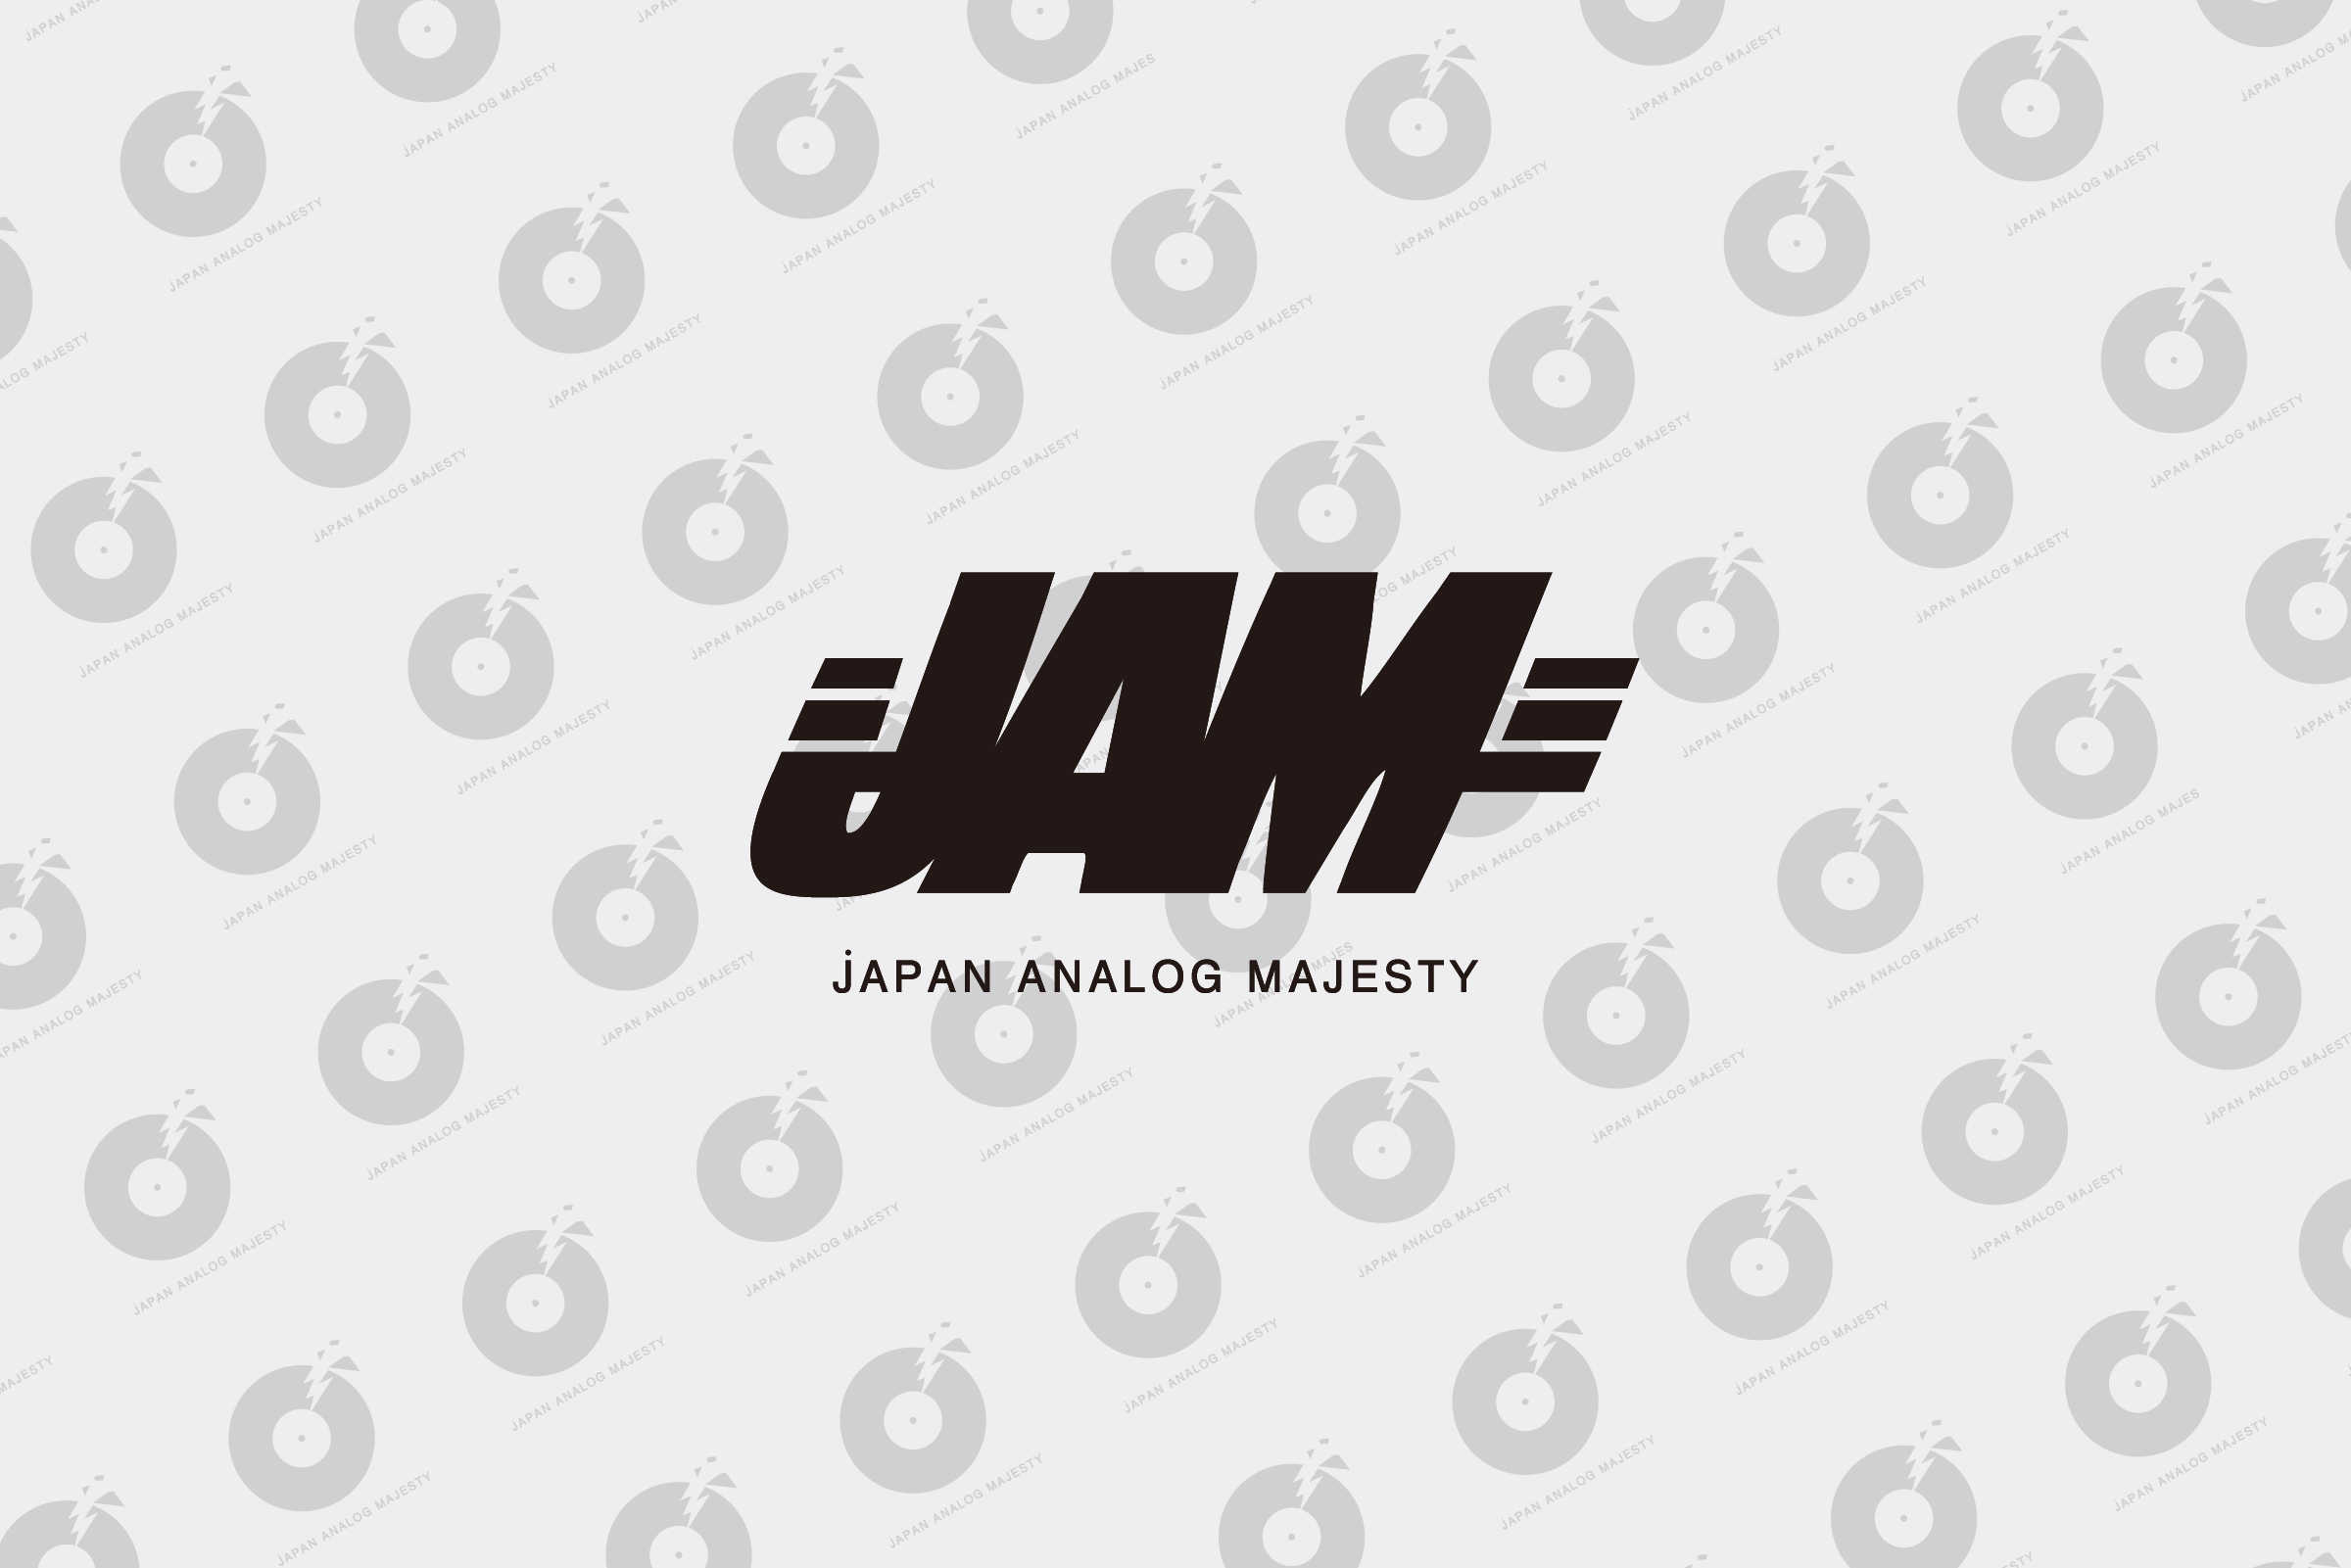 JAPAN ANALOG MAJESTY